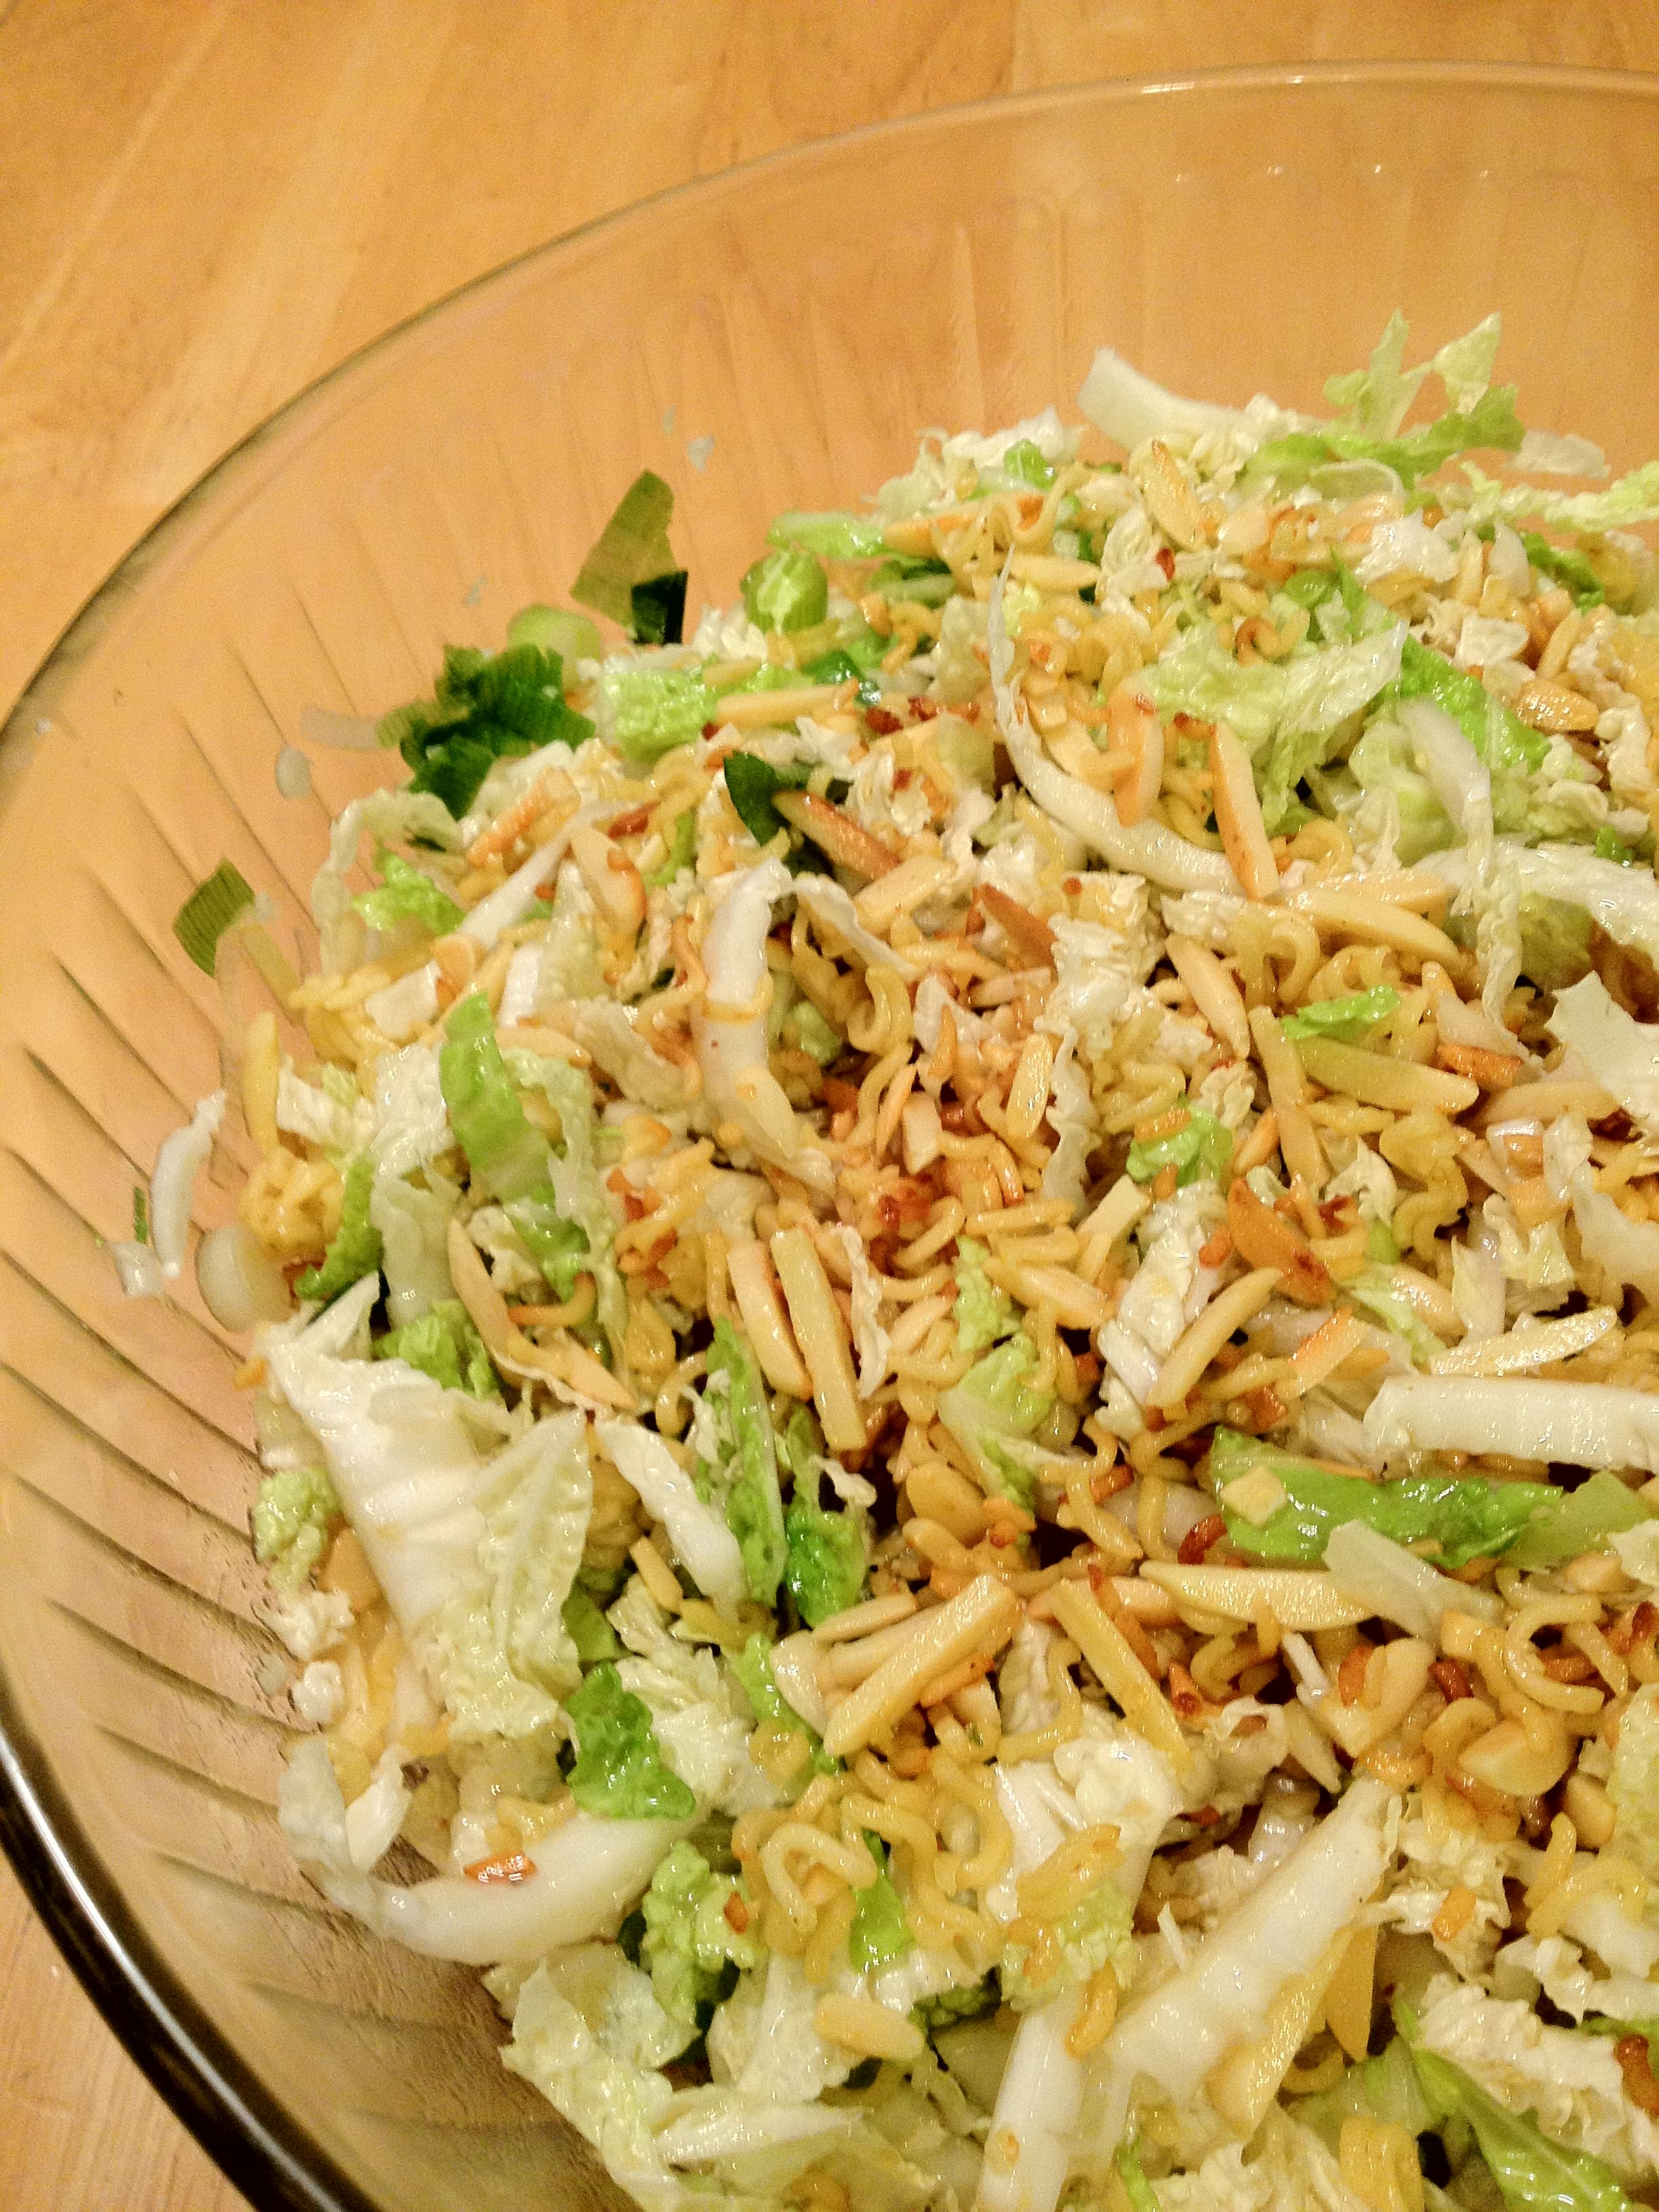 Napa Cabbage Recipes, Chinese Cabbage Salad and Napa Cabbage